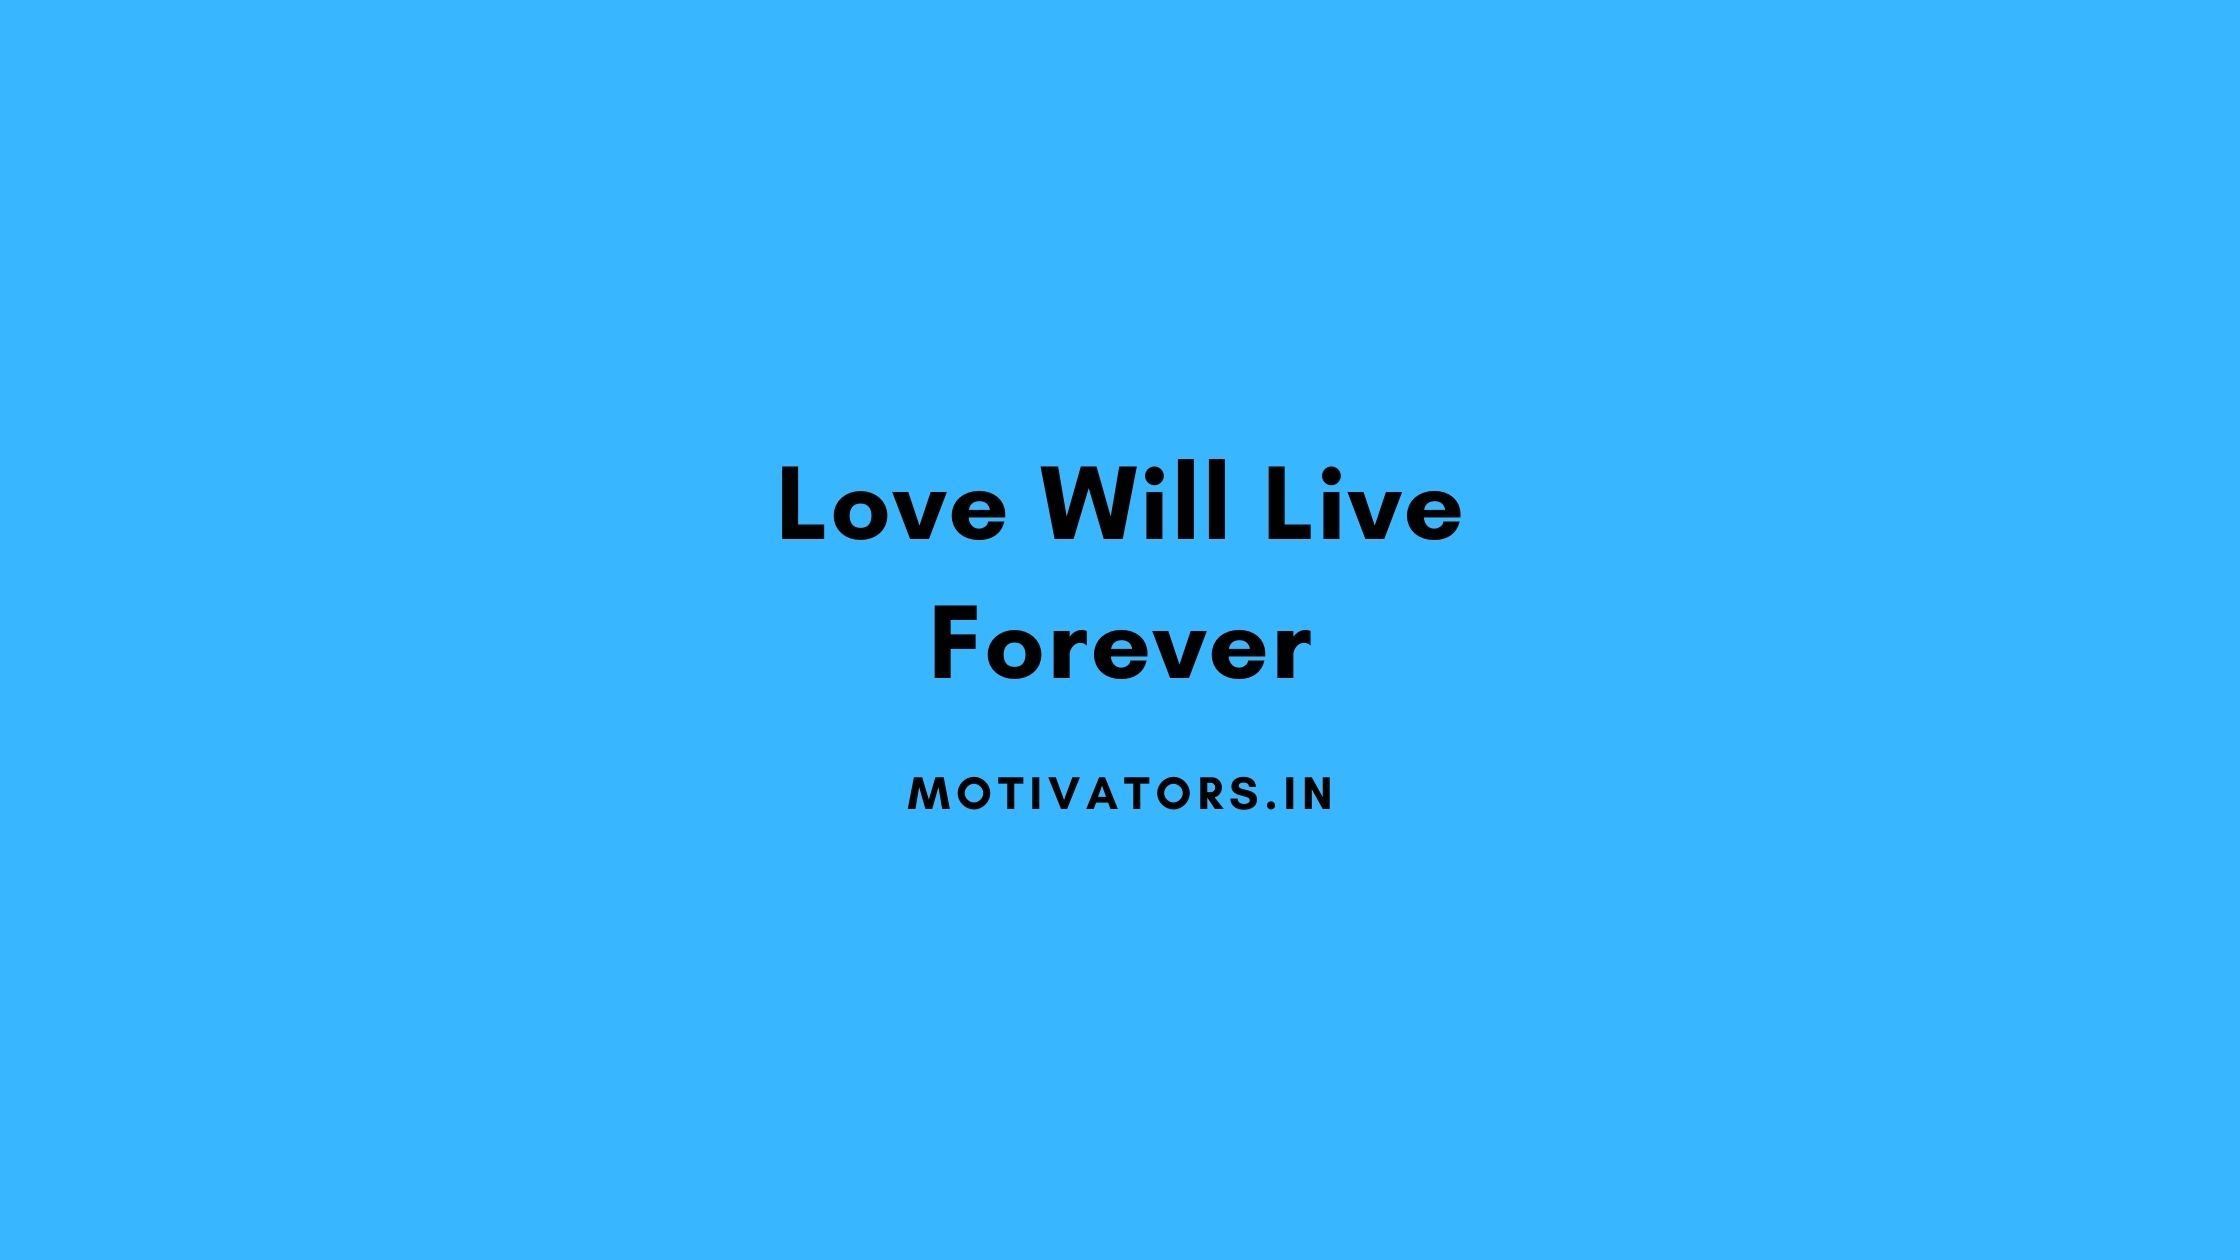 Love Will Live Forever